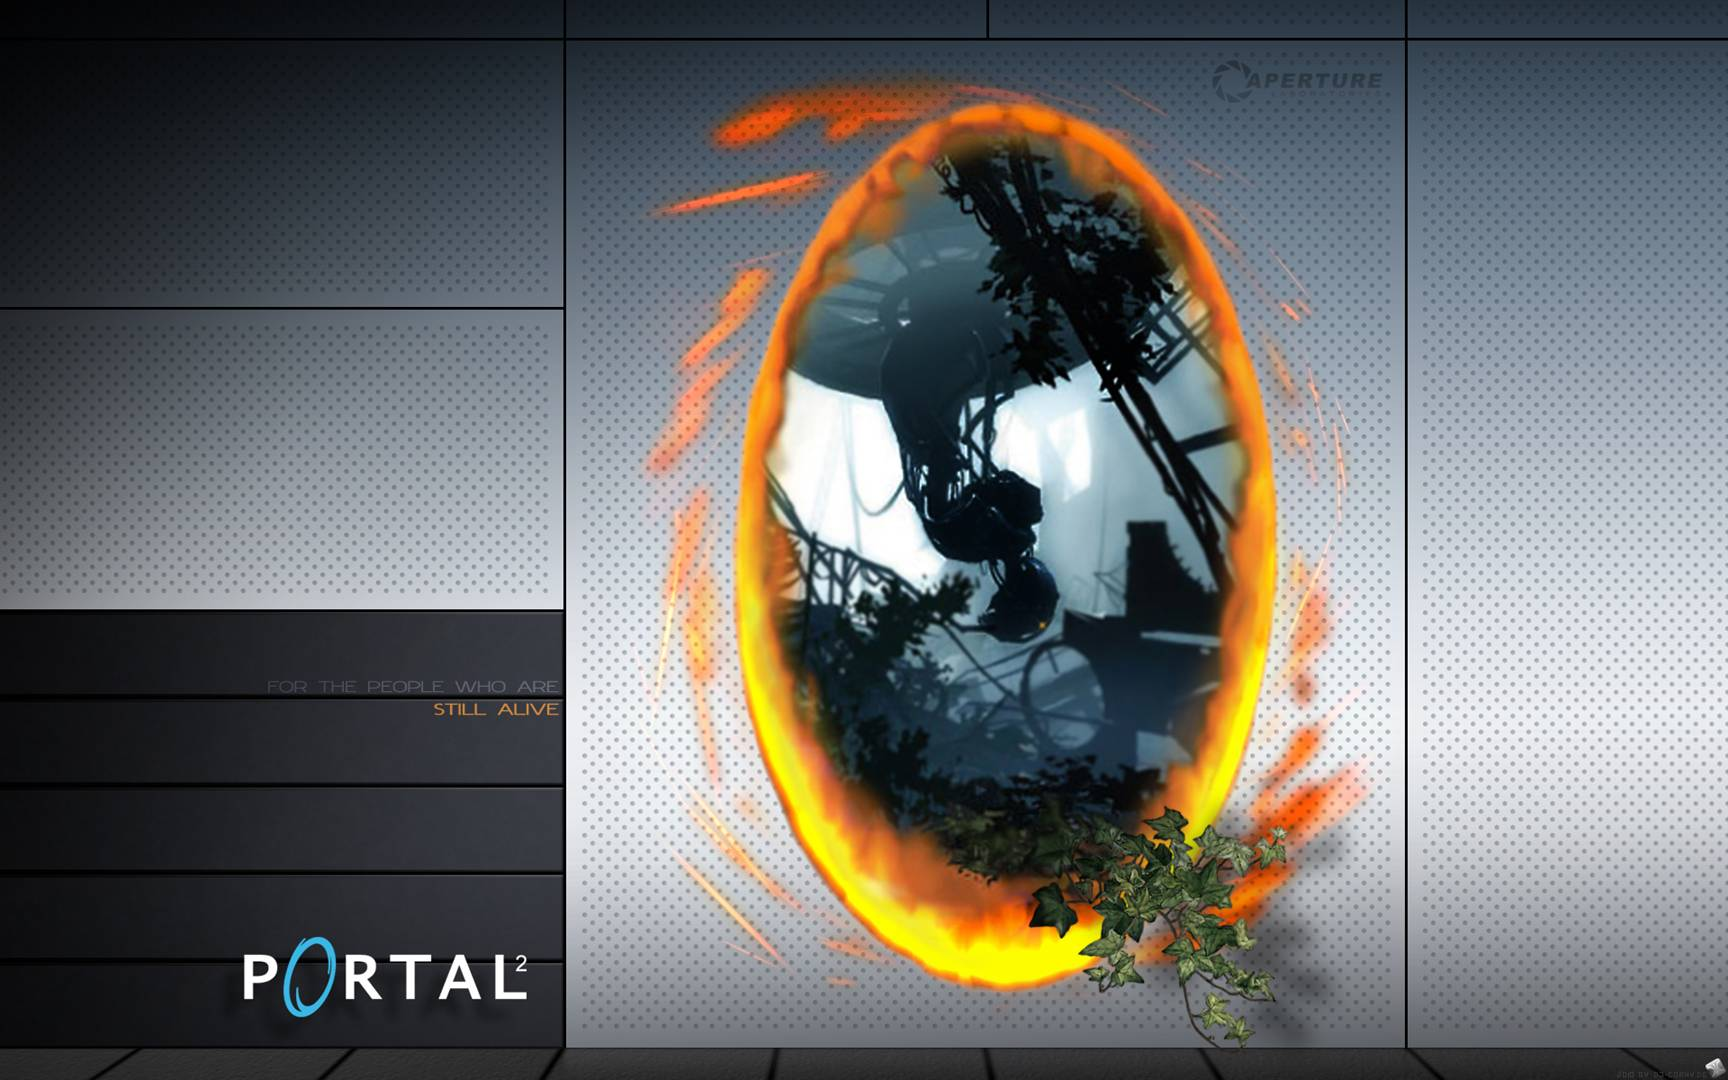 Portal 2 Wallpapers in full 1080P HD GamingBoltcom Video Game 1728x1080